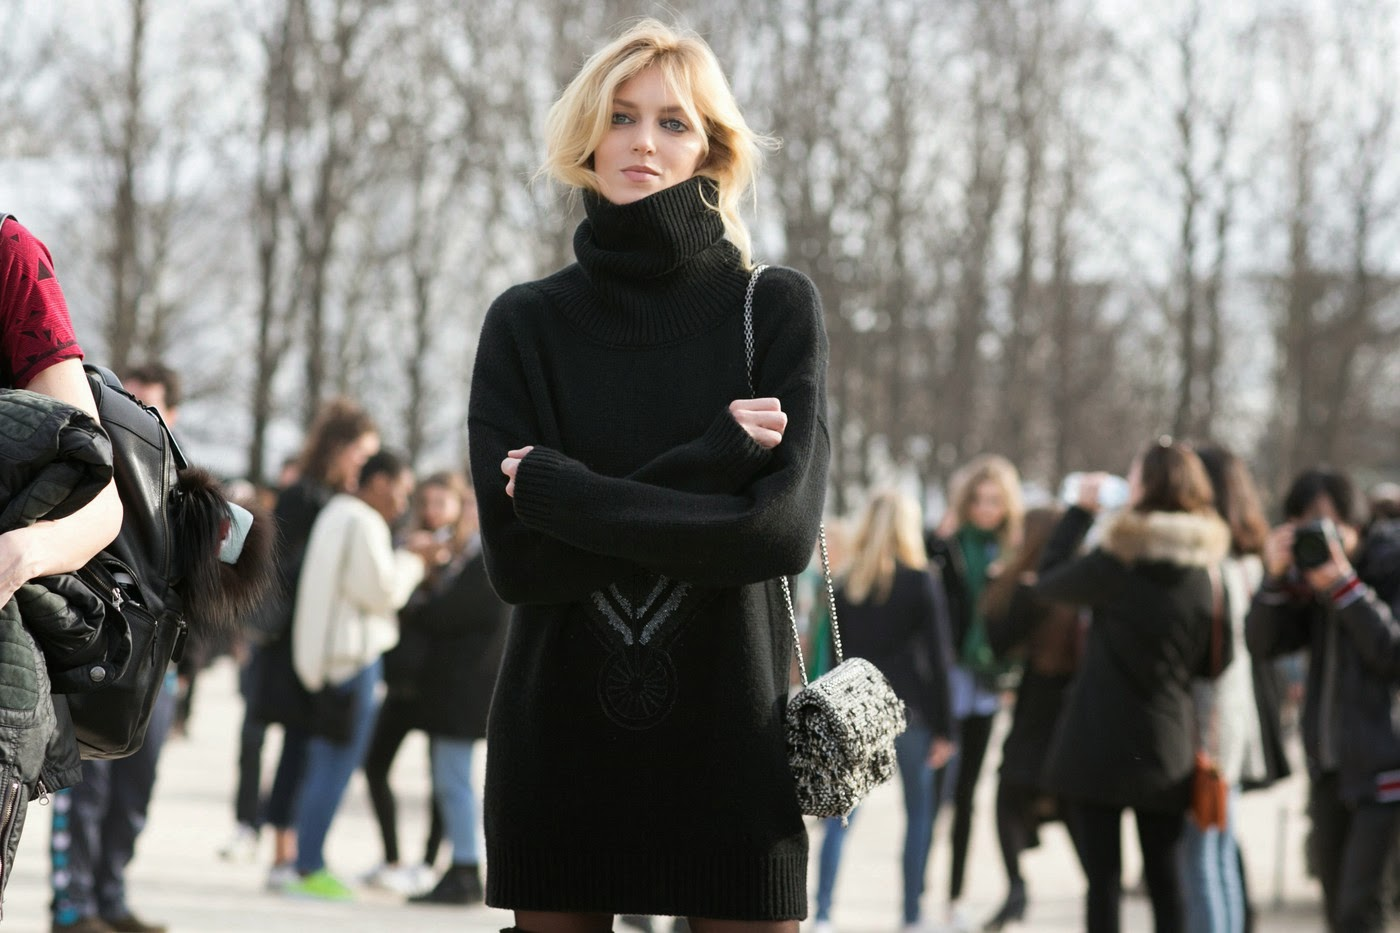 a4beb05397 Model Street Style  Anja Rubik s Sweater Dress - The Front Row View